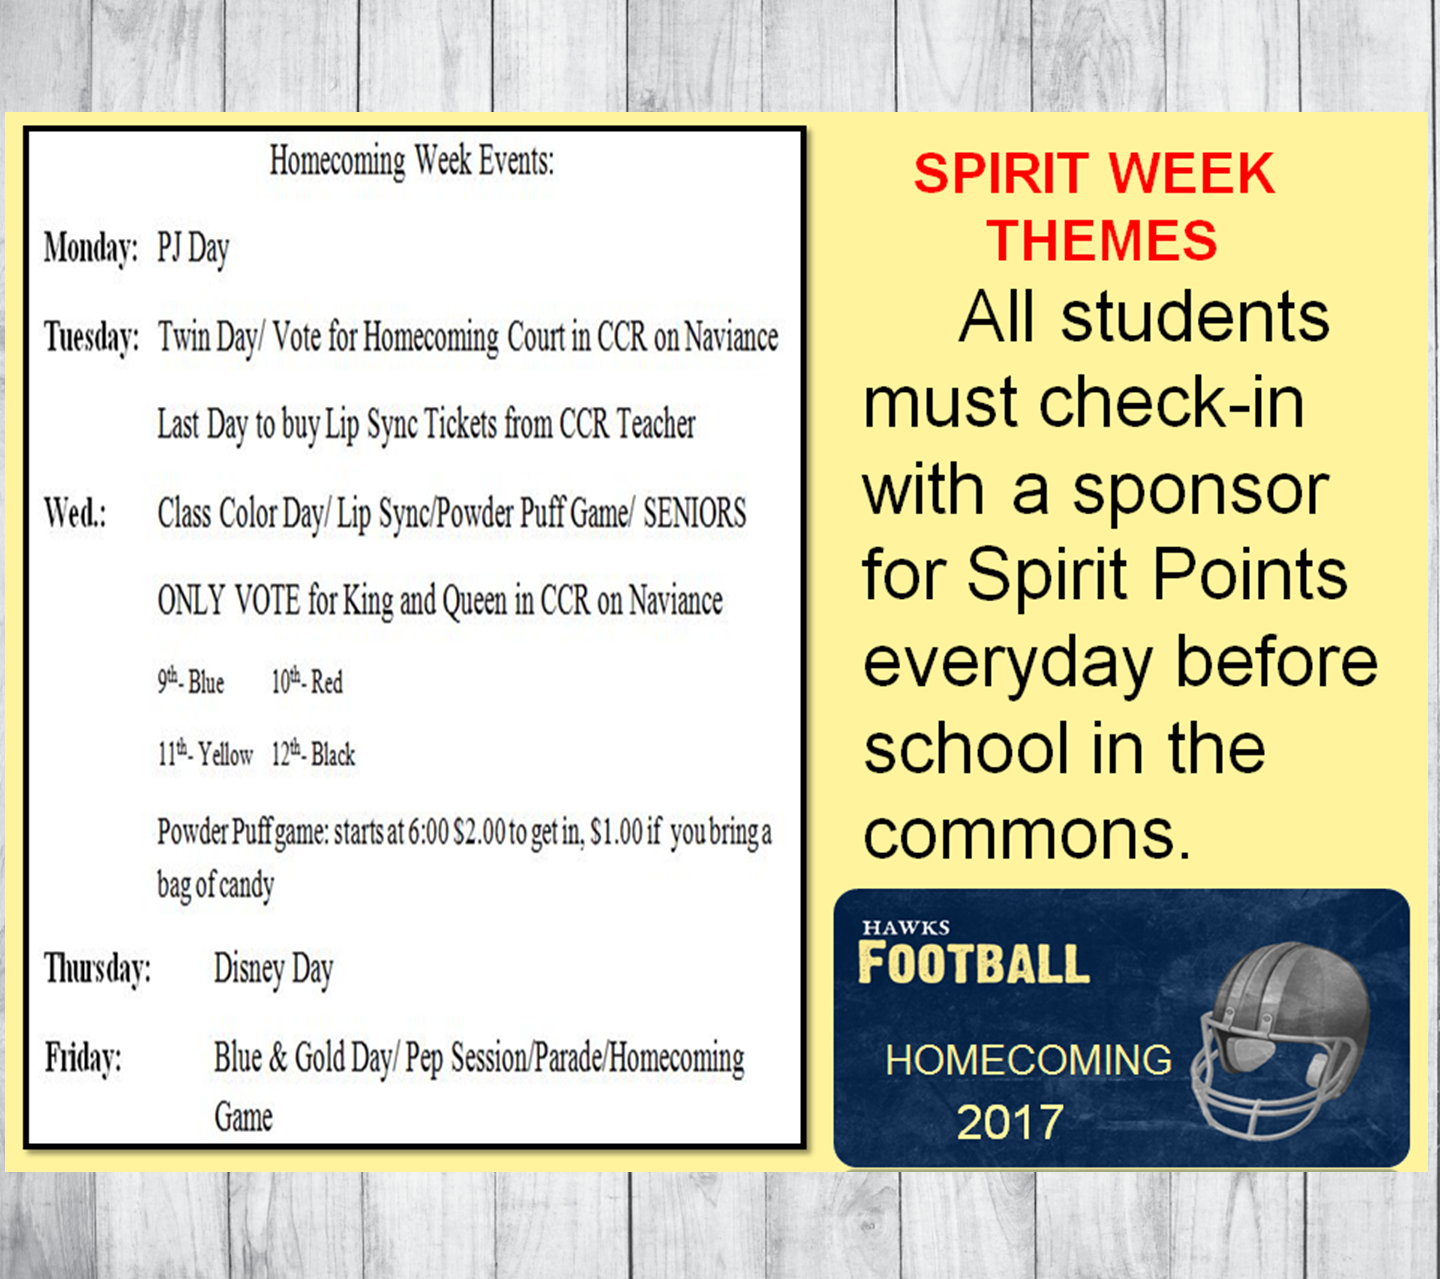 Relay for life themes ebook manual ebook aliyan us array homecoming spirit themes september 18 22 2017 decatur central rh decaturproud org fandeluxe Images